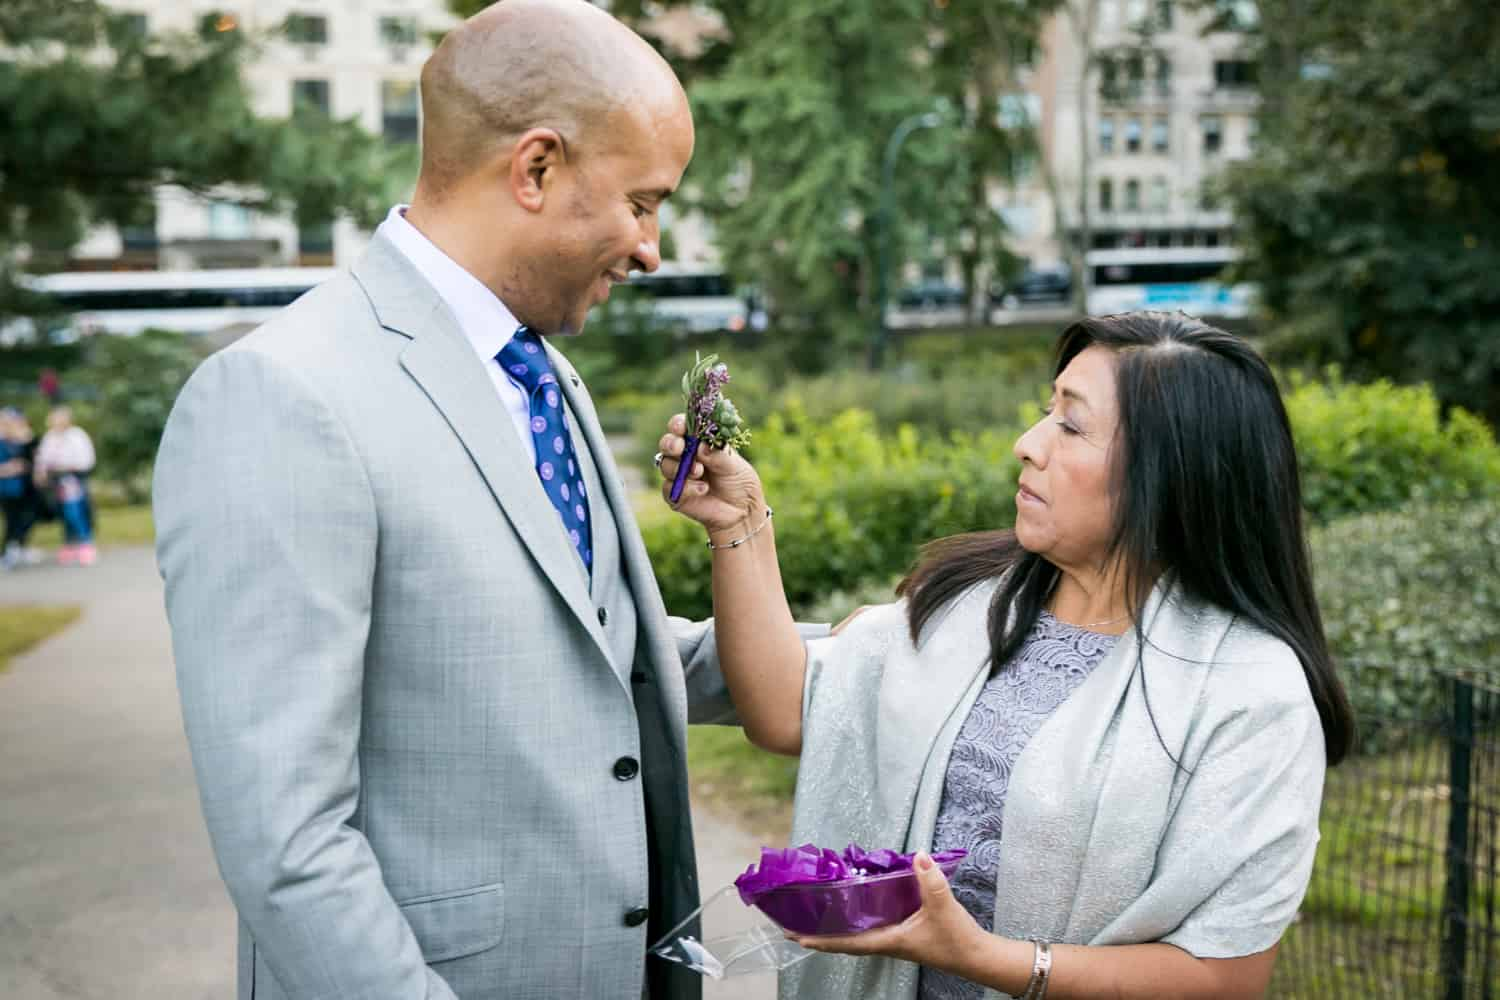 Mother of bride putting boutonniere on groom for an article on Central Park wedding planning tips